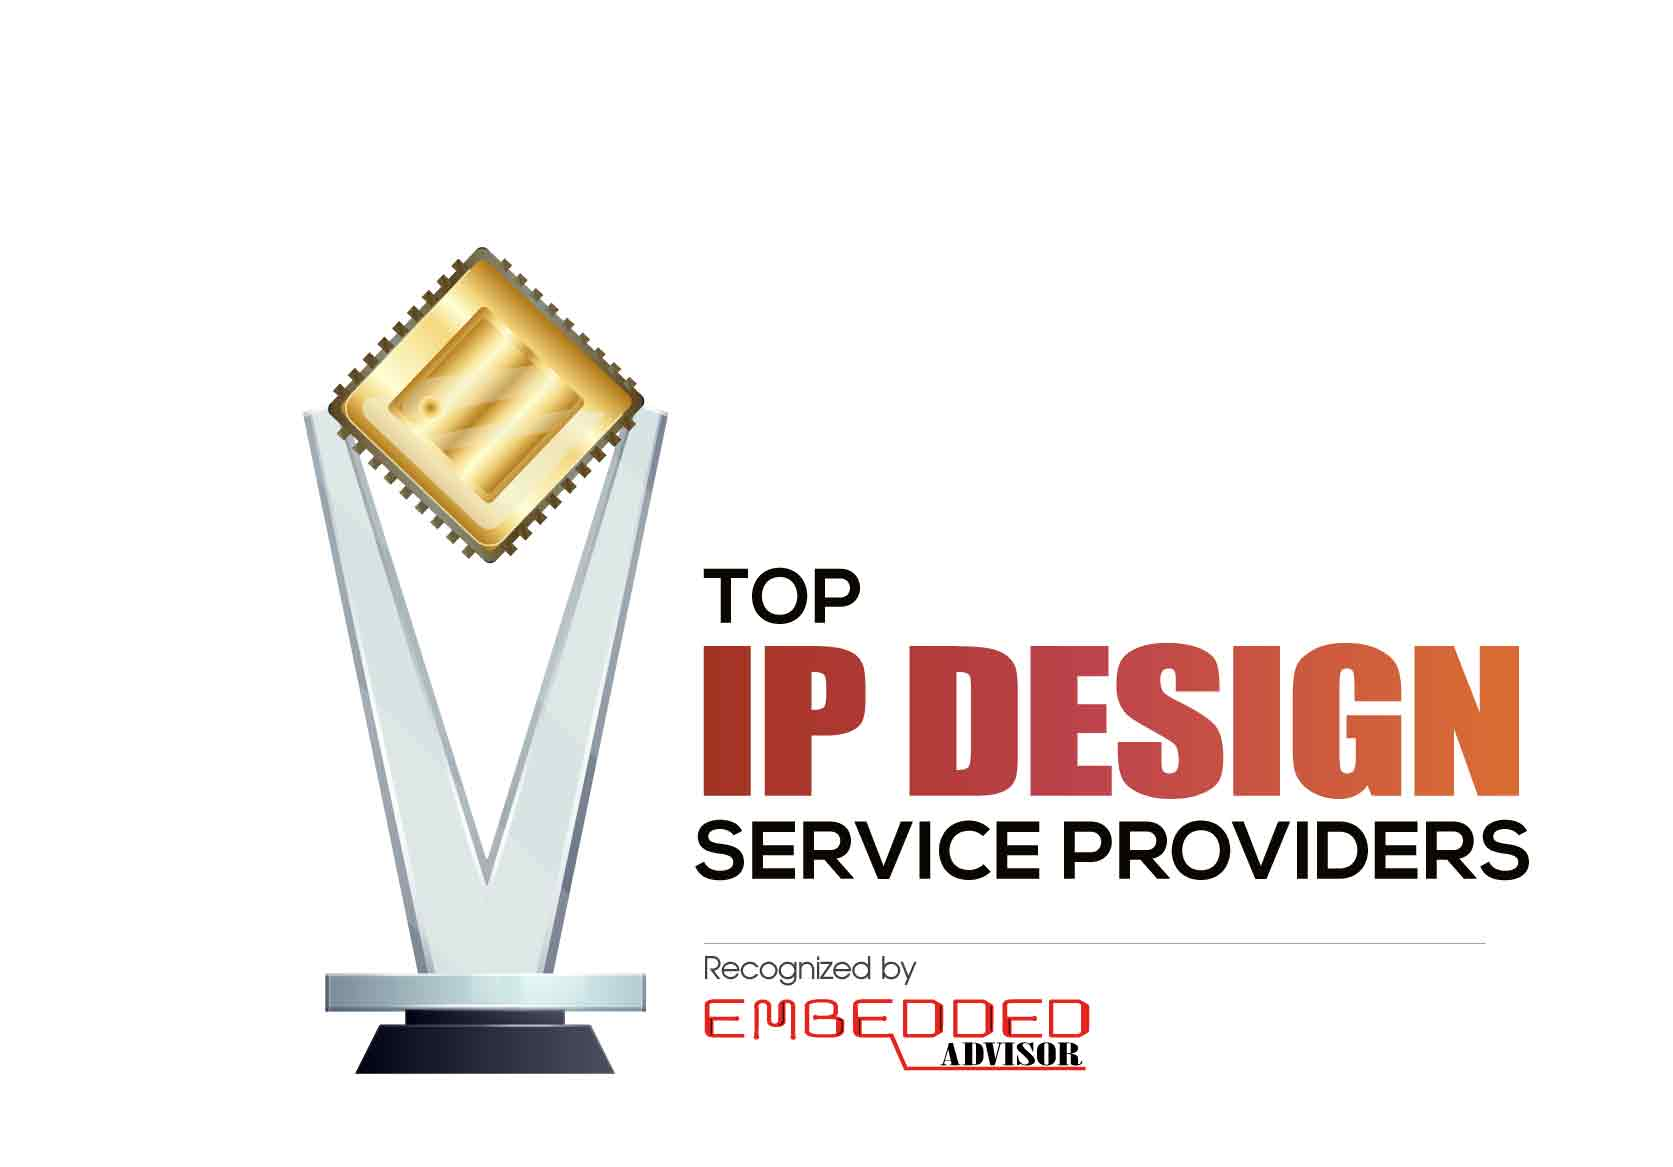 Top 10 IP Design Service Companies - 2020